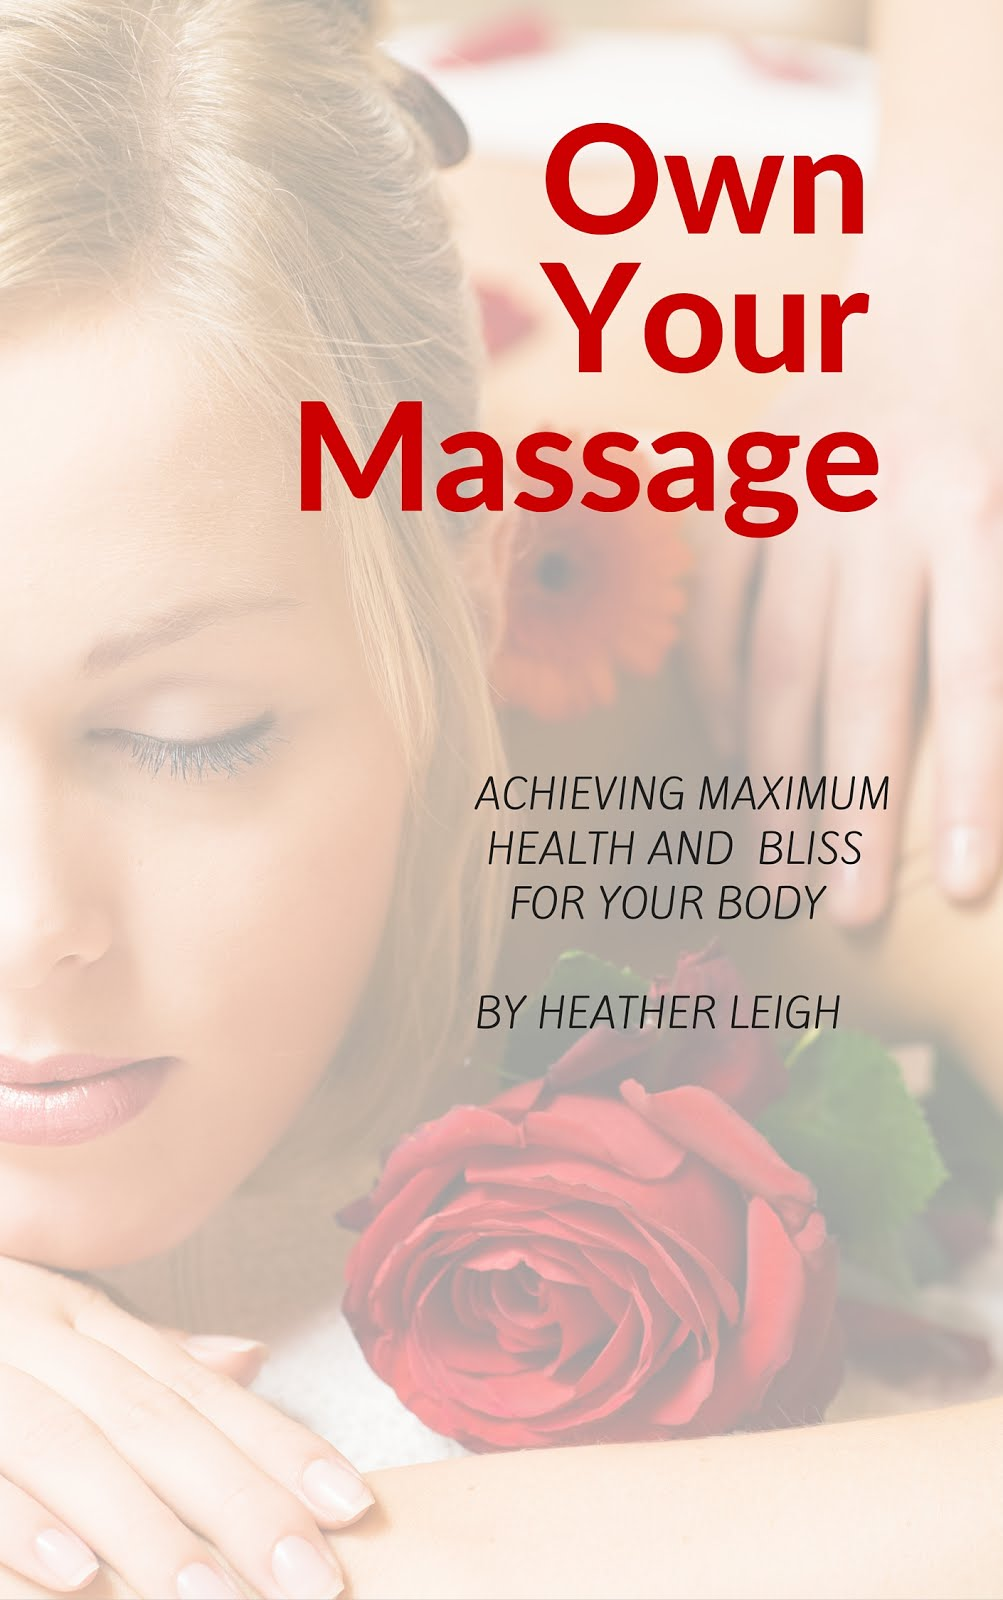 Getting the most out of your massage.